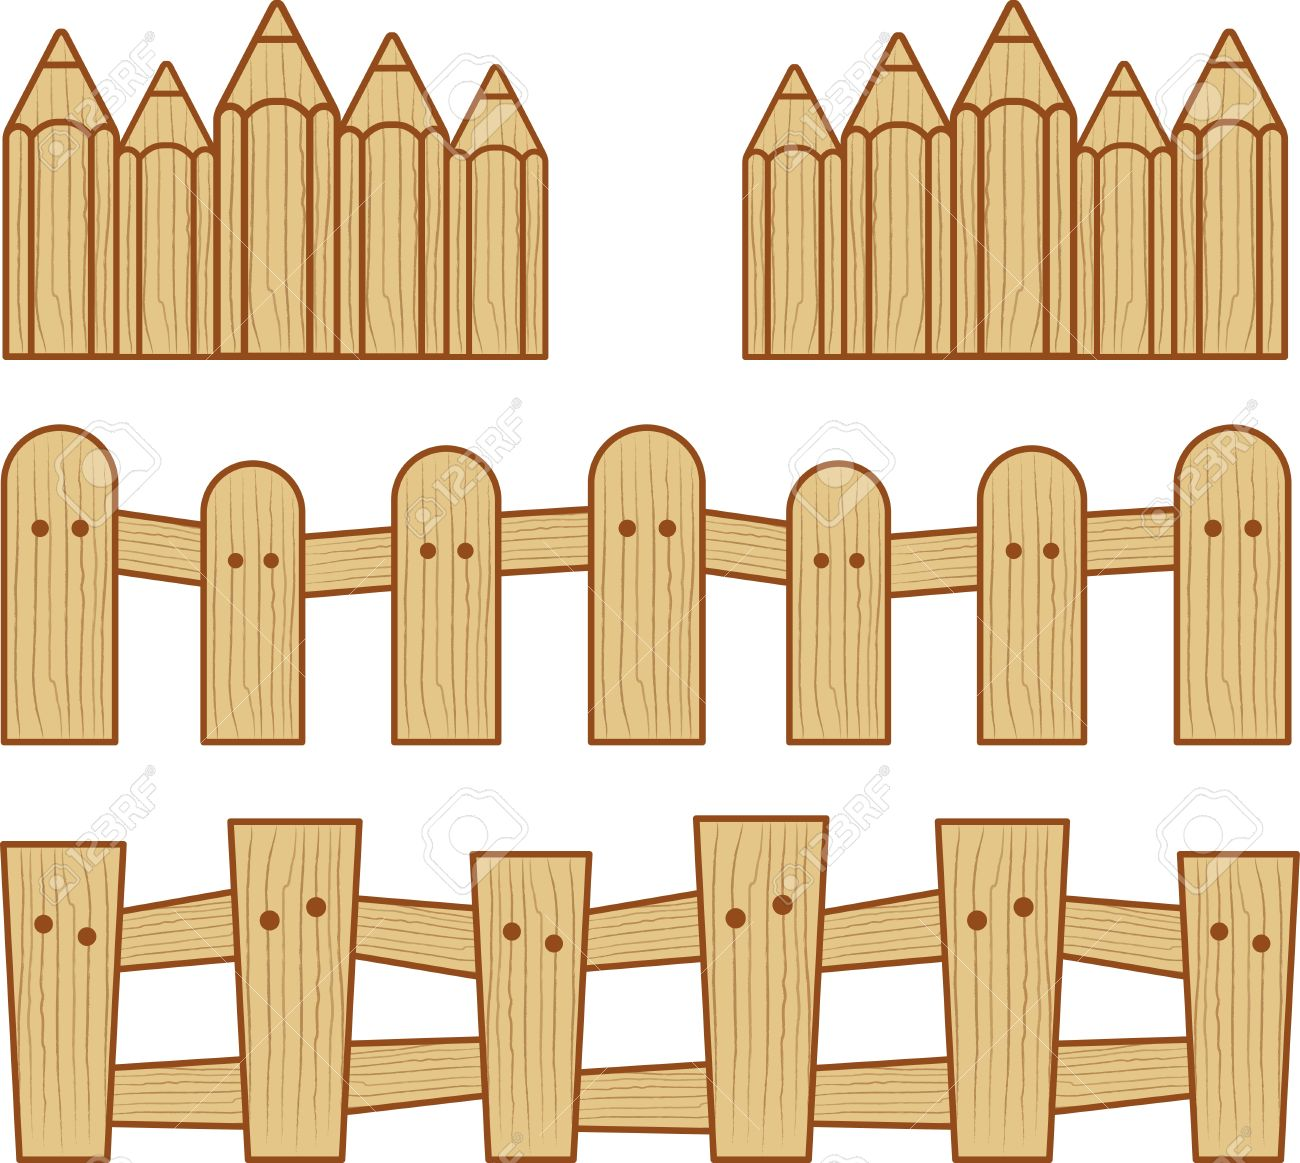 Farm Fence Clipart 7,983 border fence cliparts, stock vector and royalty free border